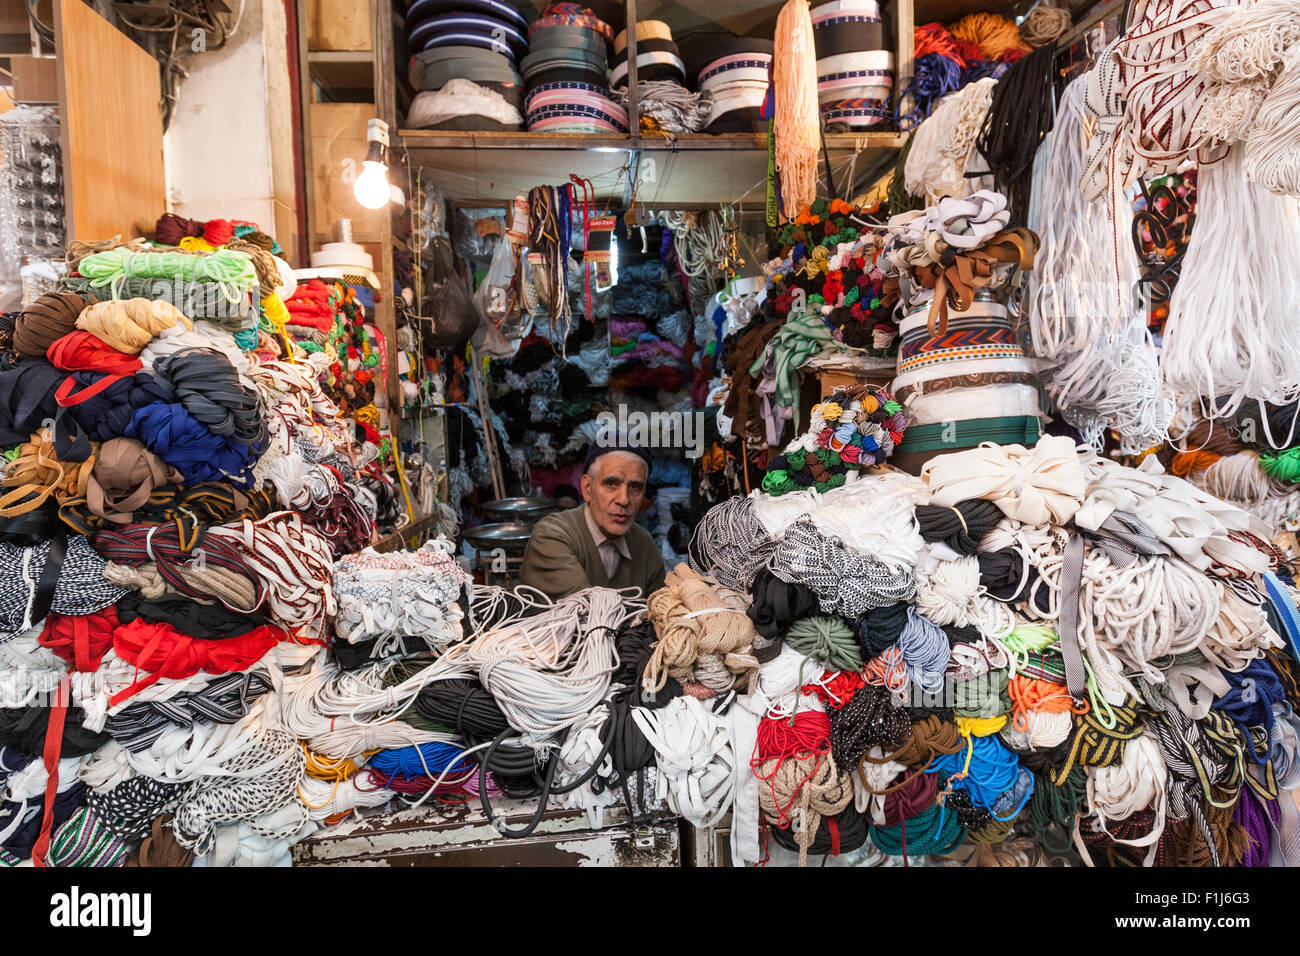 string-lace-seller-in-the-grand-bazaar-a